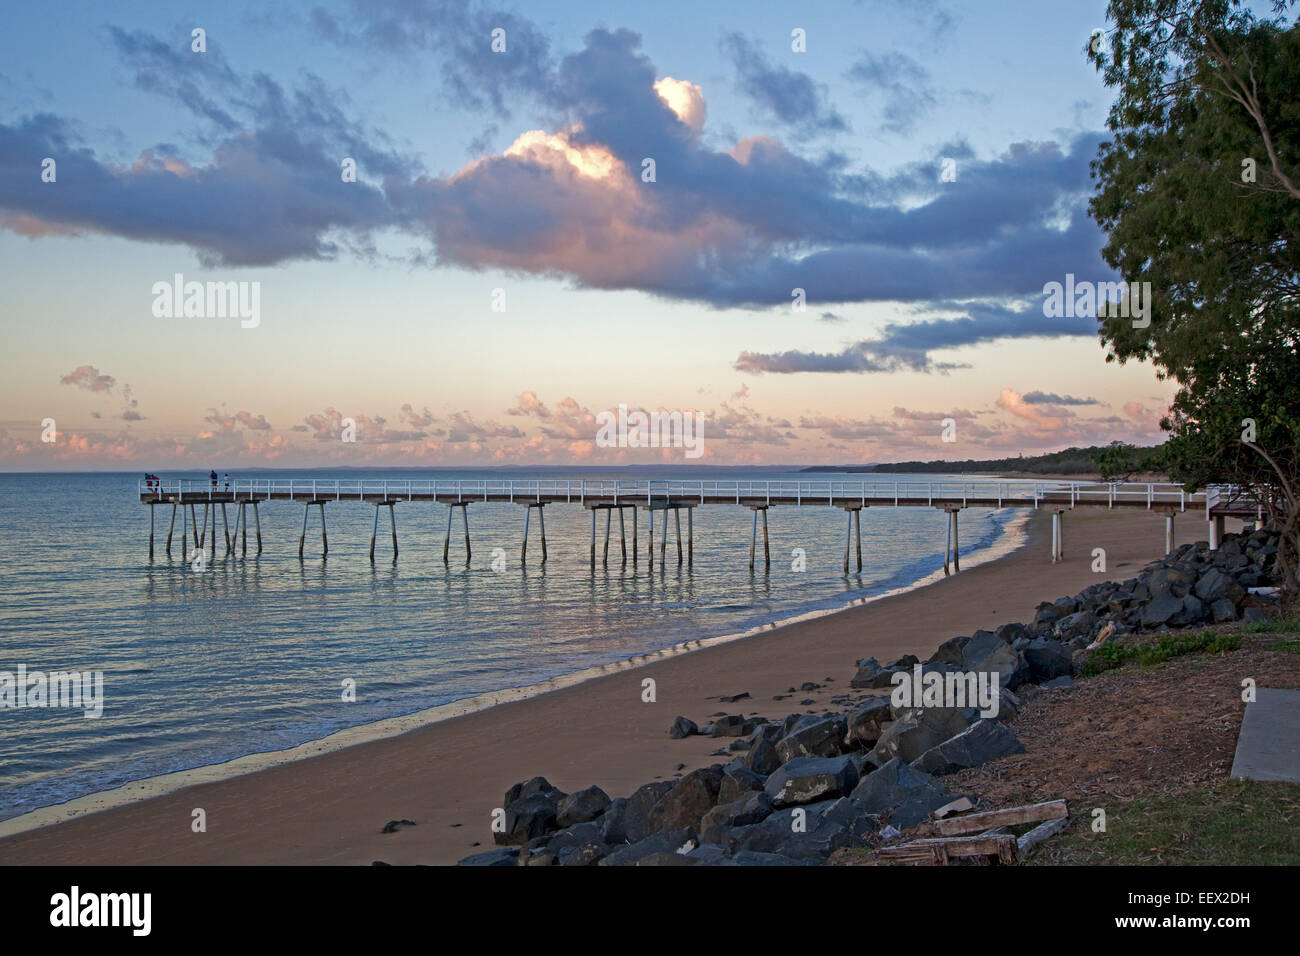 Jetty and sandy beach in Hervey Bay at sunset, Queensland, Australia - Stock Image